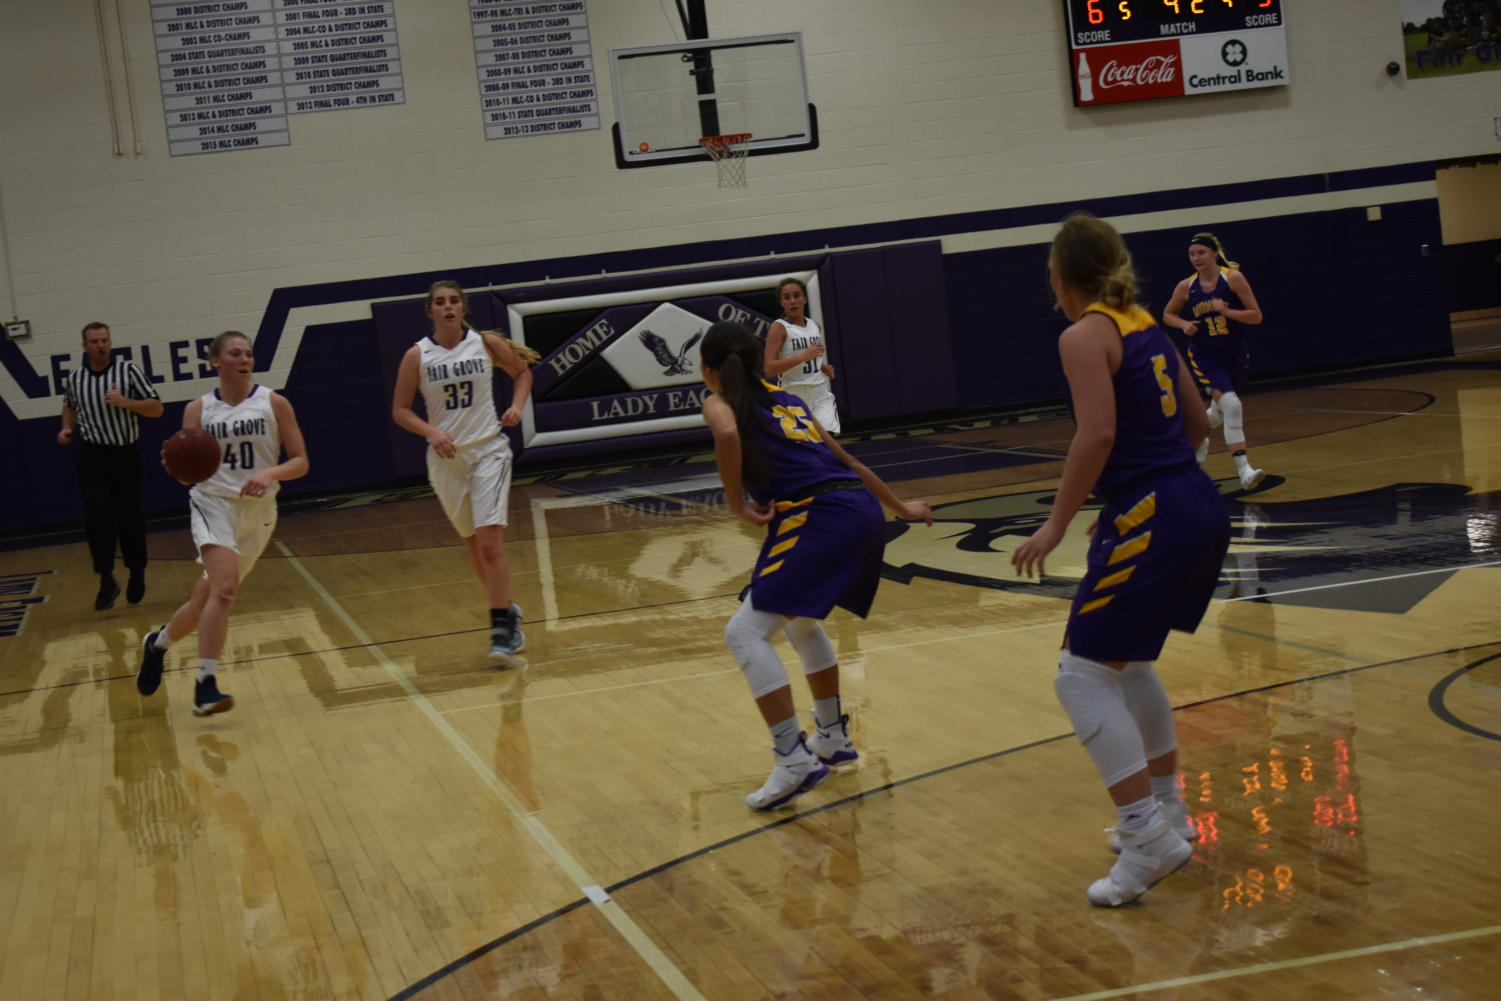 Alana Findley(11) dribbles the ball down the court.